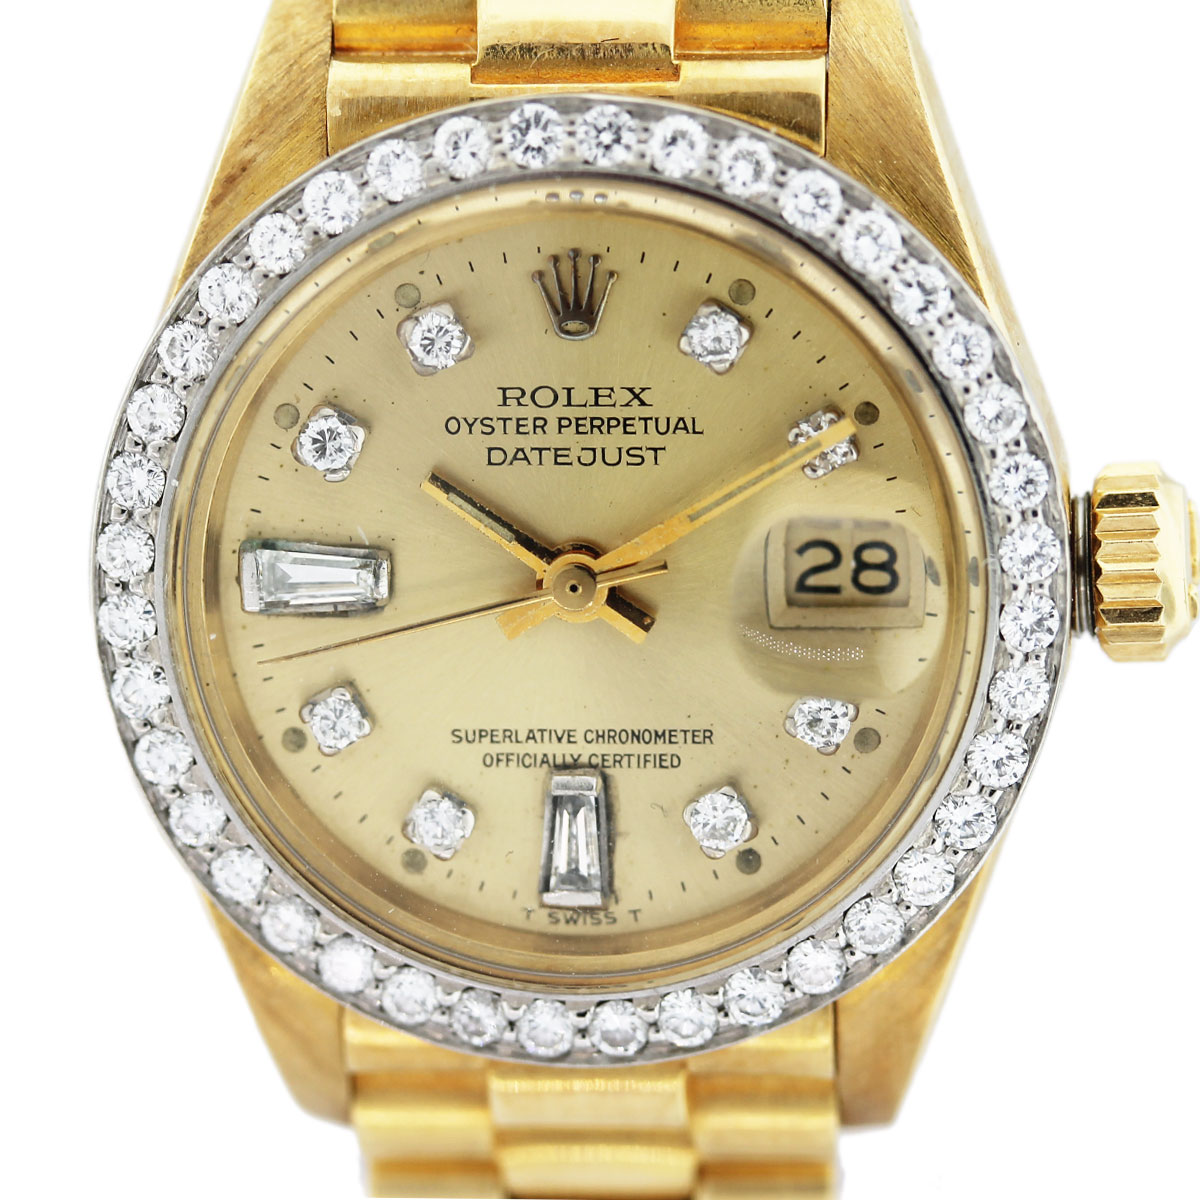 how to unclasp a rolex watch